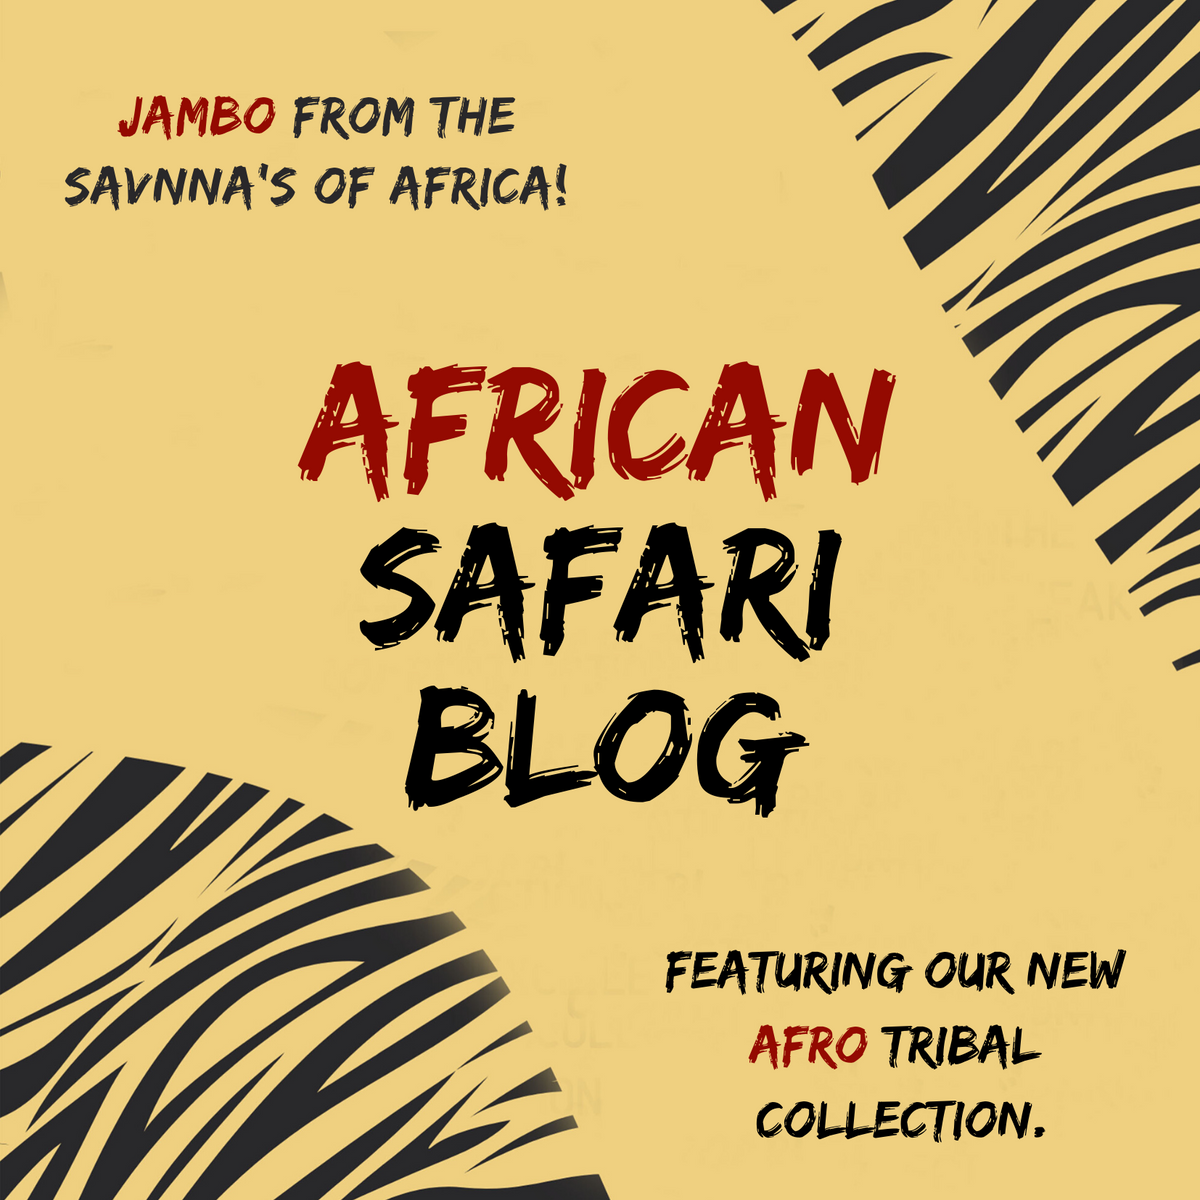 African Safari Blog: 7 Amazing African Experiences for 2020!